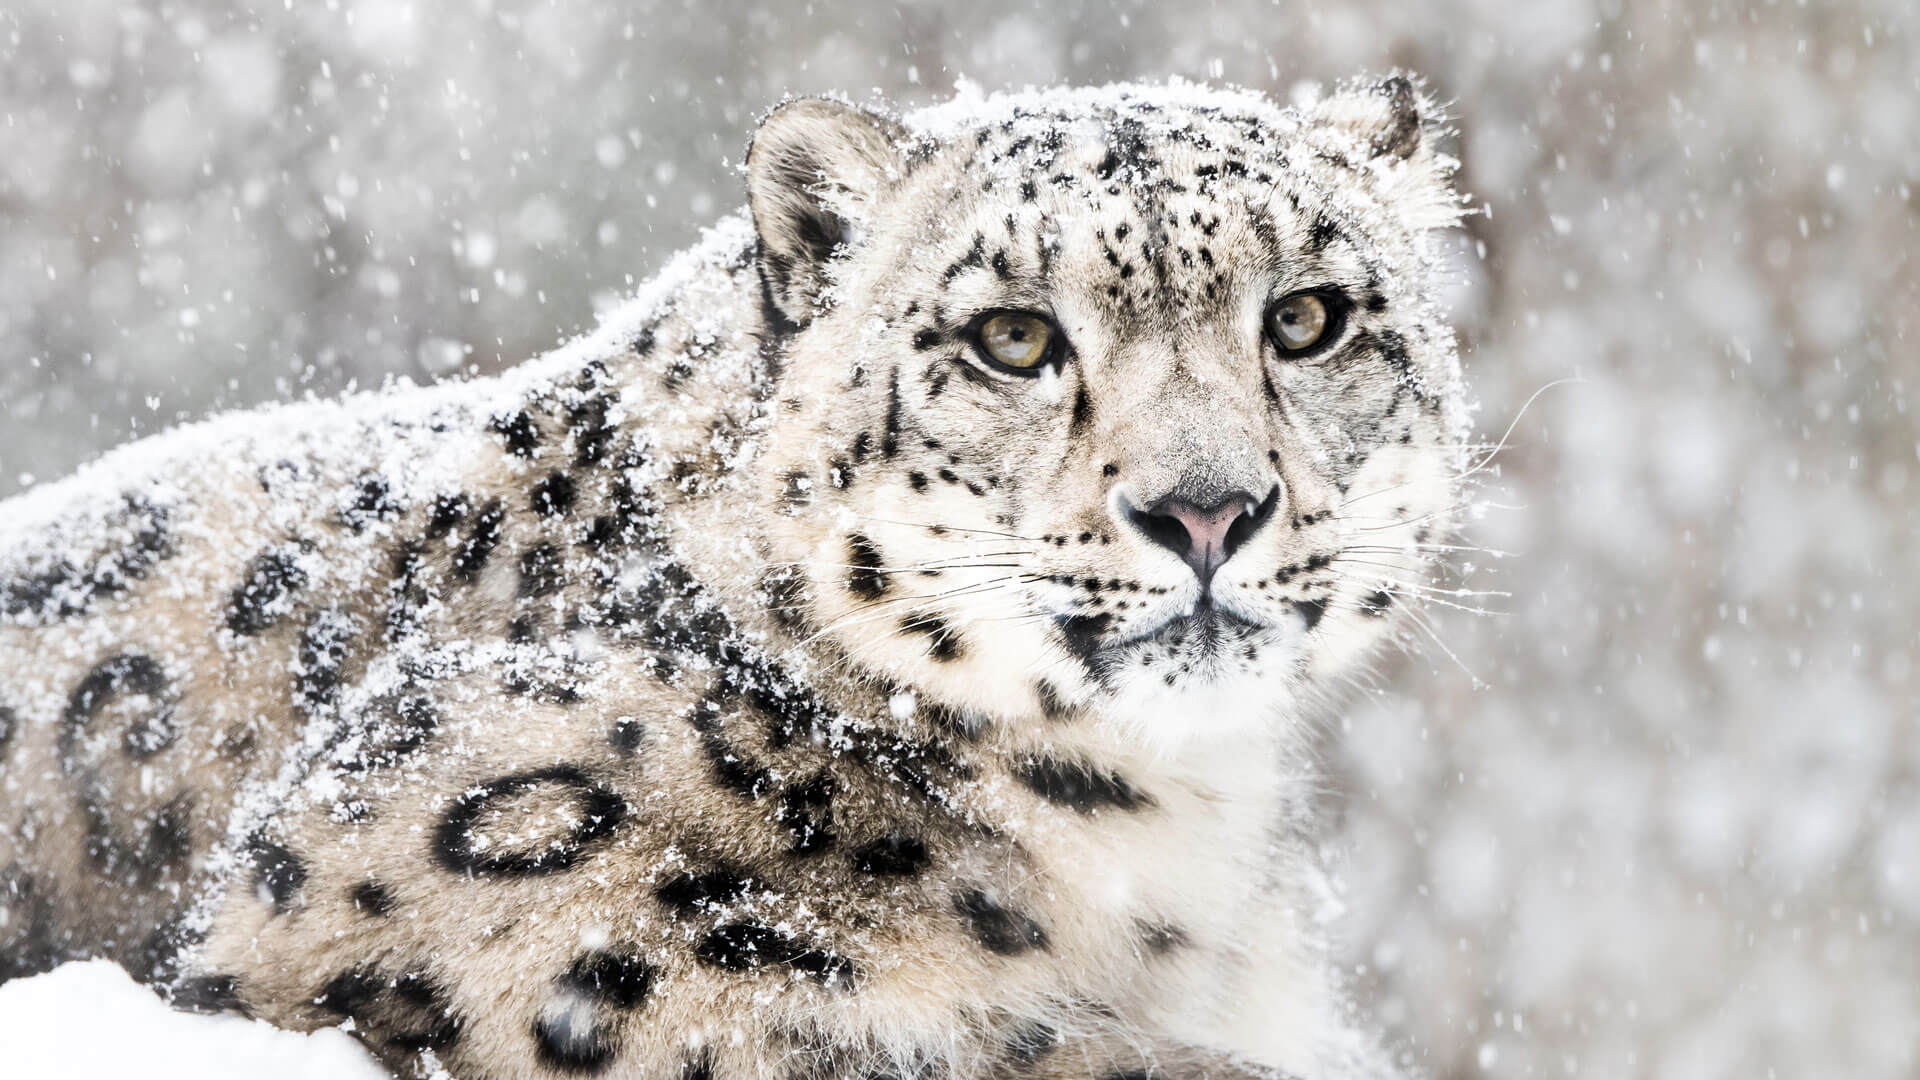 A Snow Leopard Portrait - From The Roger Williams Park Zoo, Rhode Island